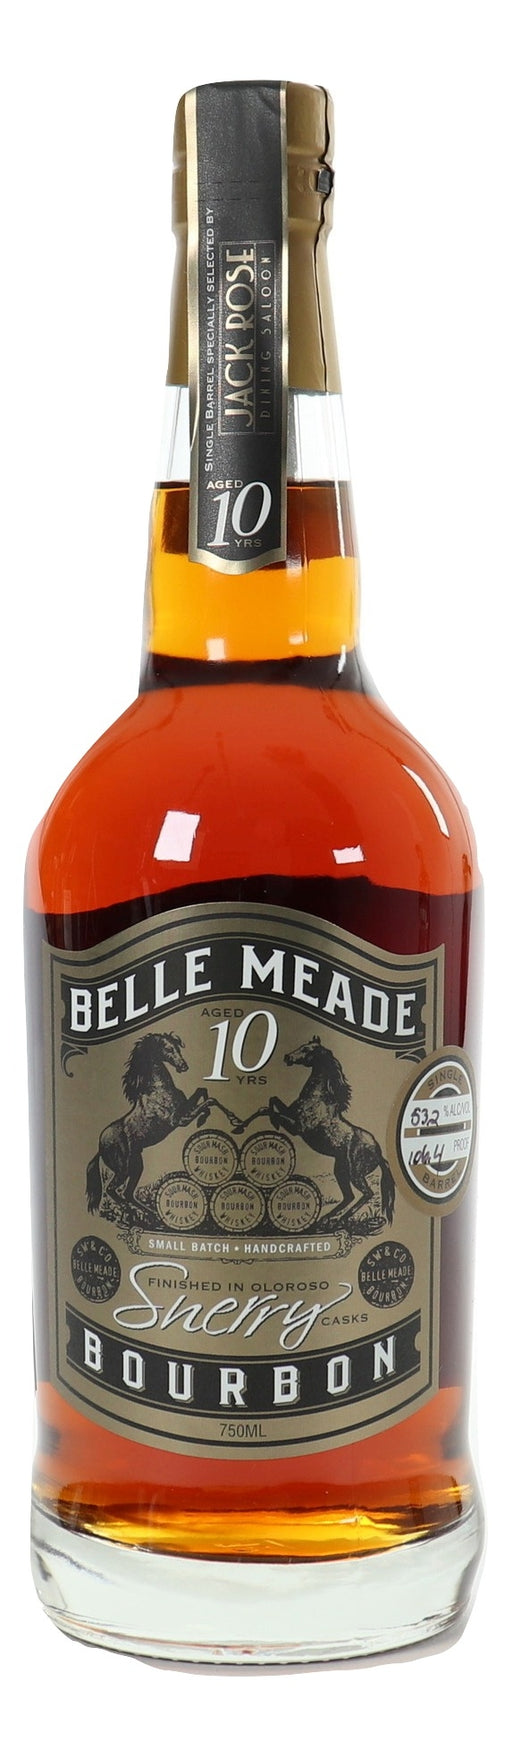 Belle Meade 10 Year Old  Sherry Finish Single Barrel For Sale - NativeSpiritsOnline